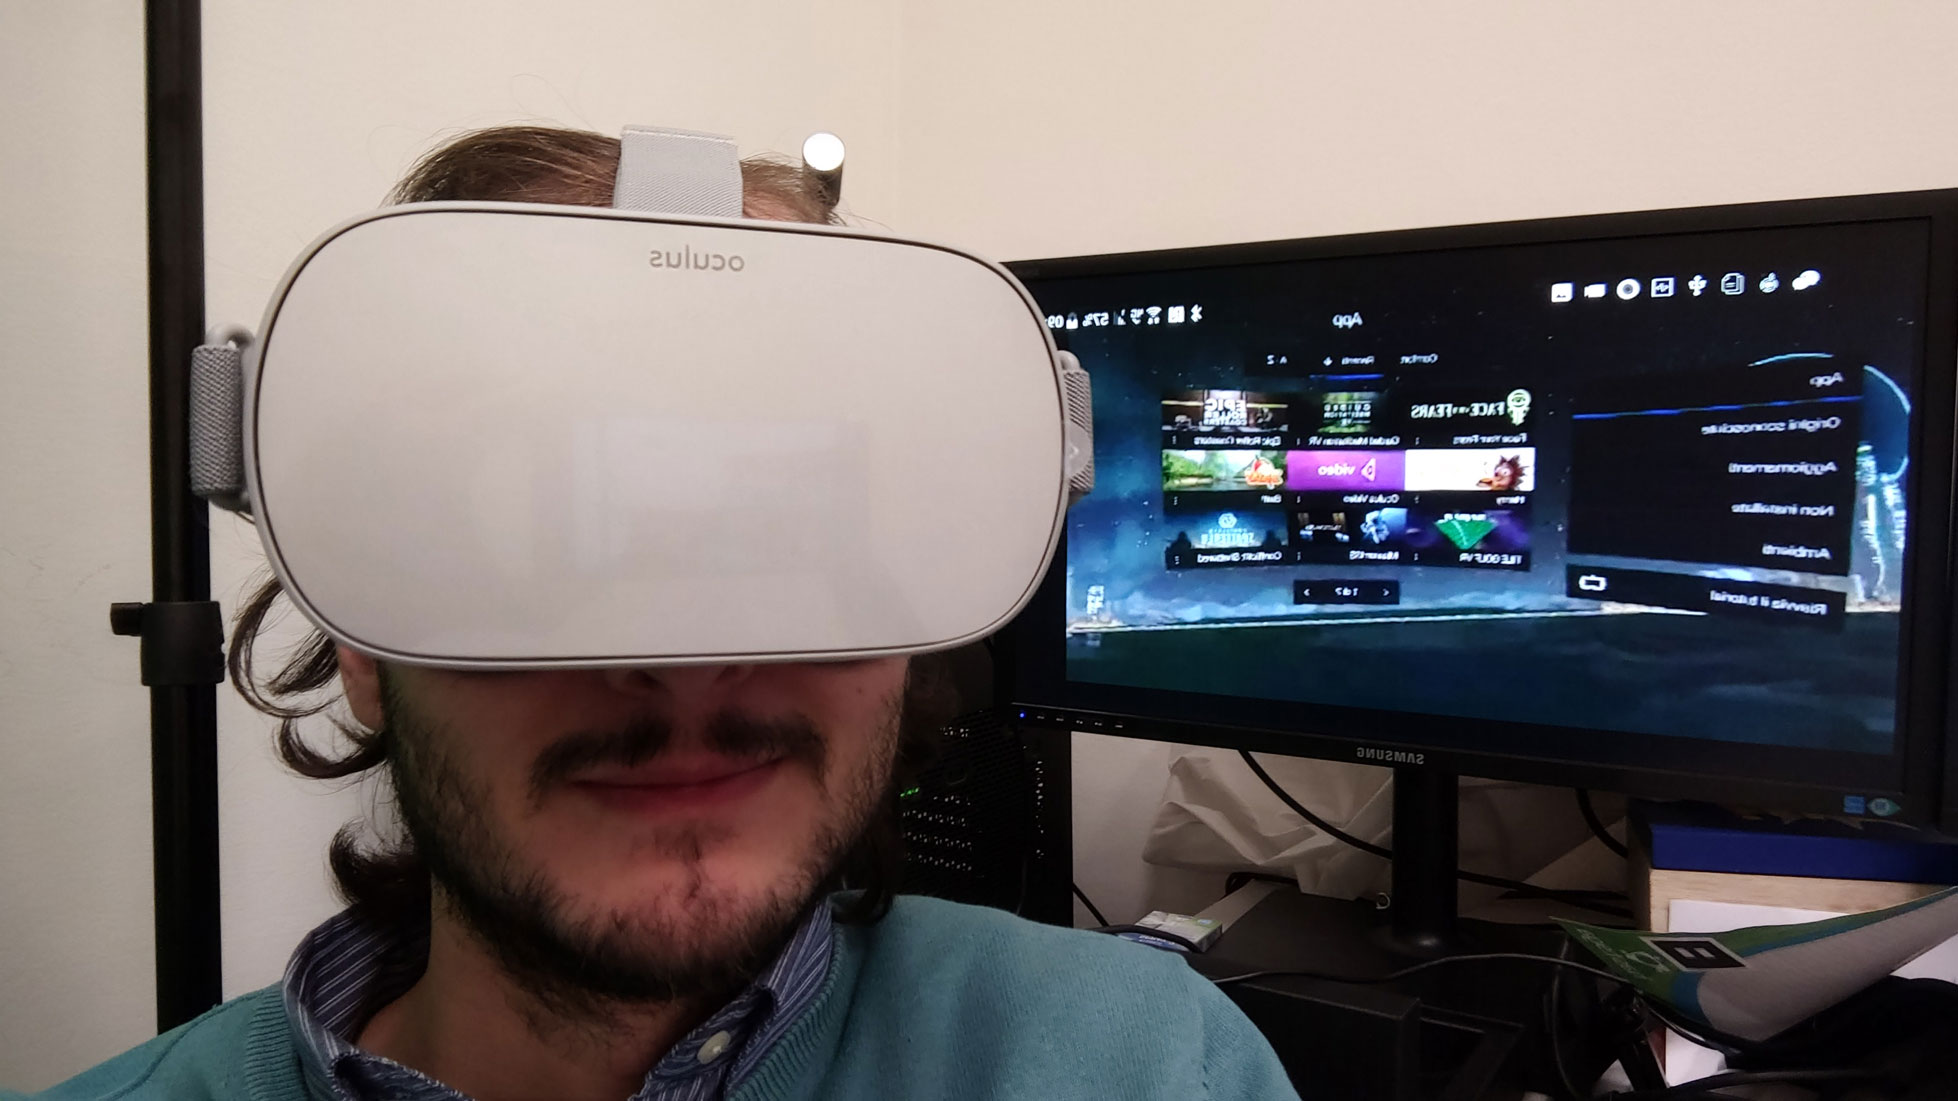 How To Build an App for the Oculus Go From Start To Finish (with